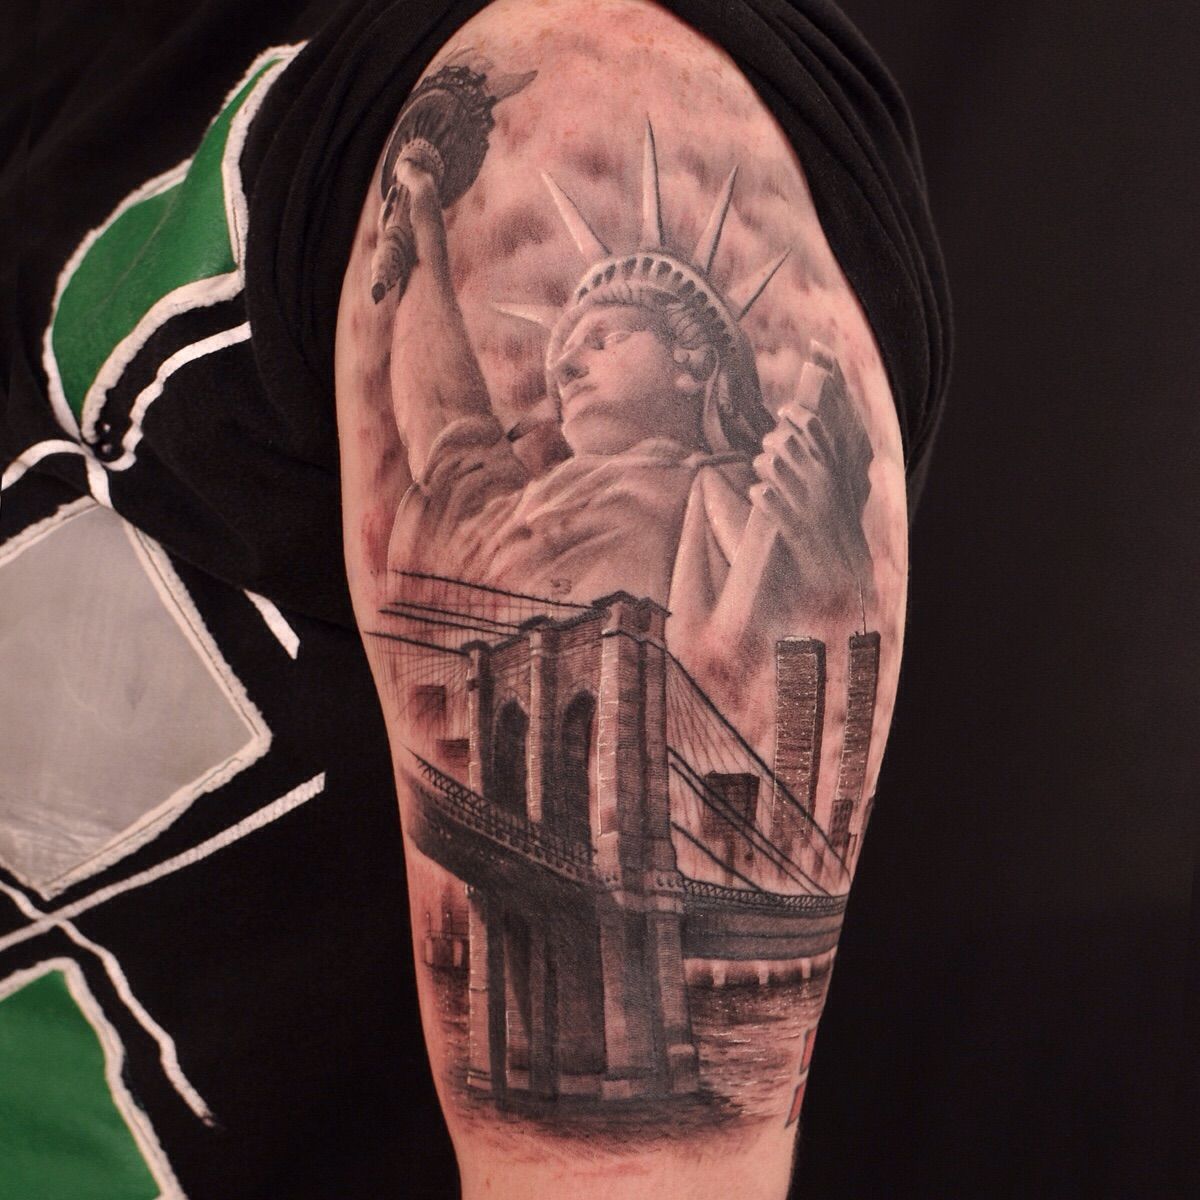 New York Sleeve Tattoo - Google Search